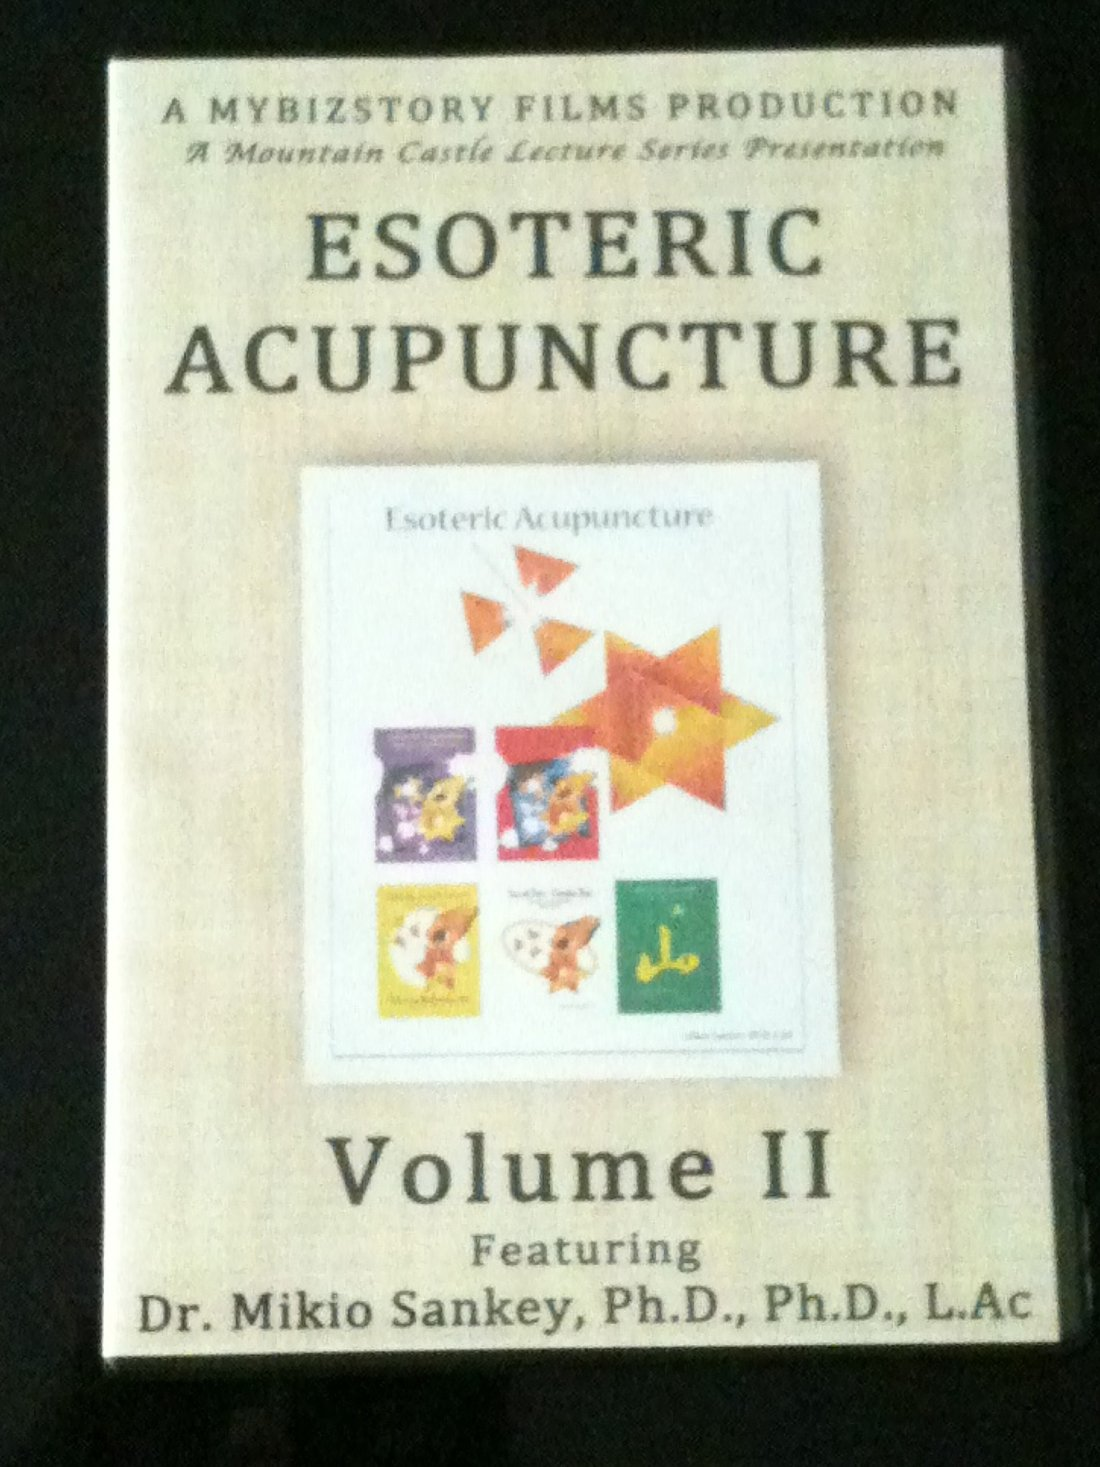 Esoteric Acupuncture Volume II (2 DVD Set)